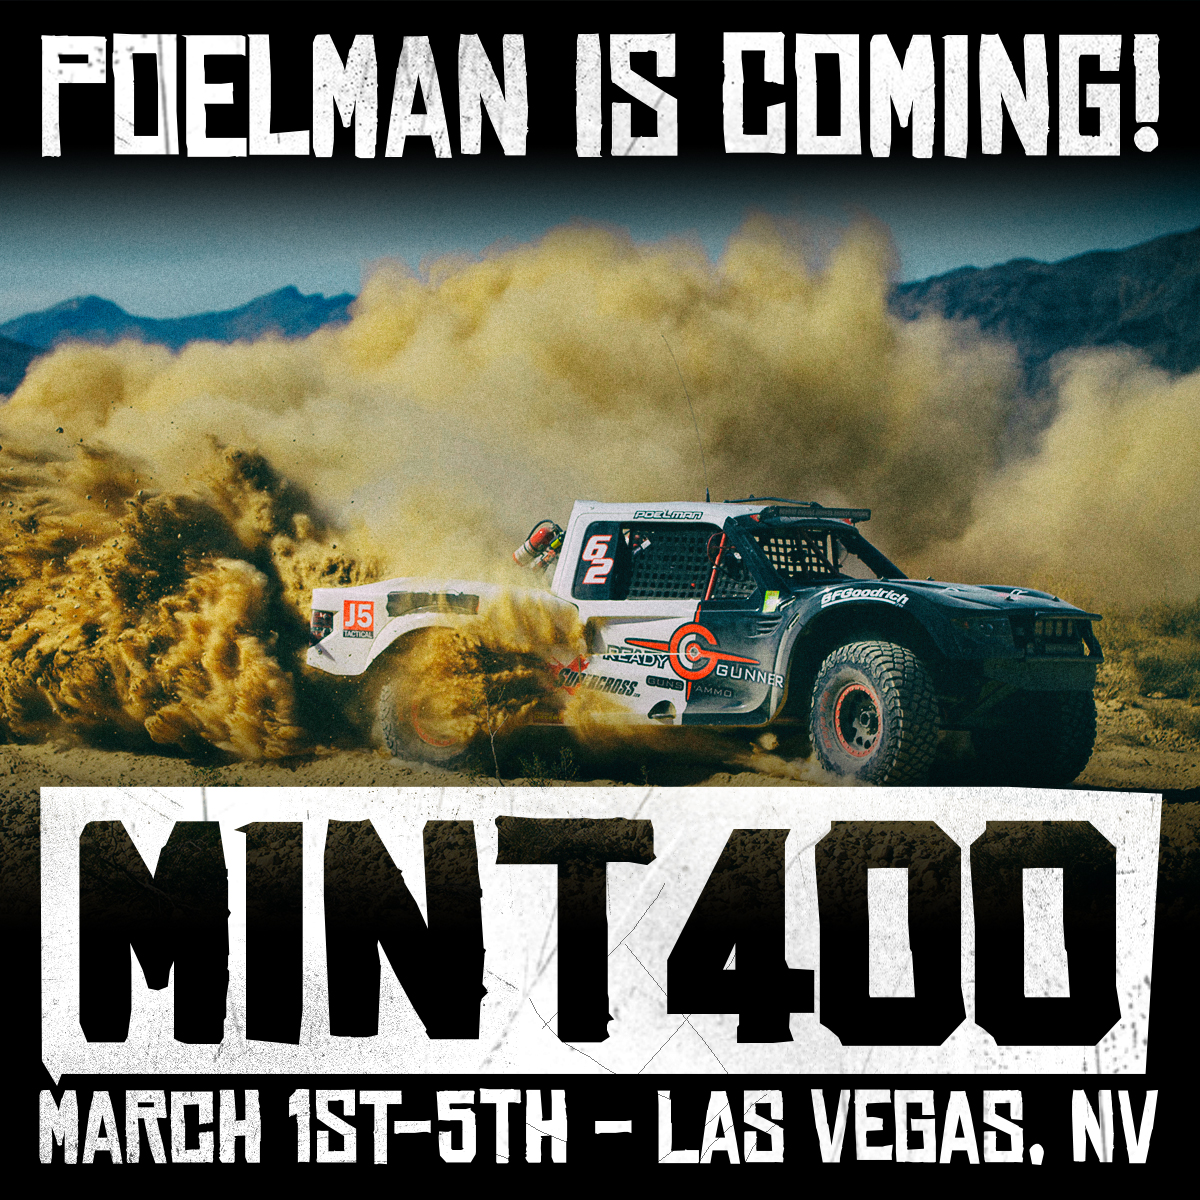 2017_mint_400_Poelman_is_coming.jpg